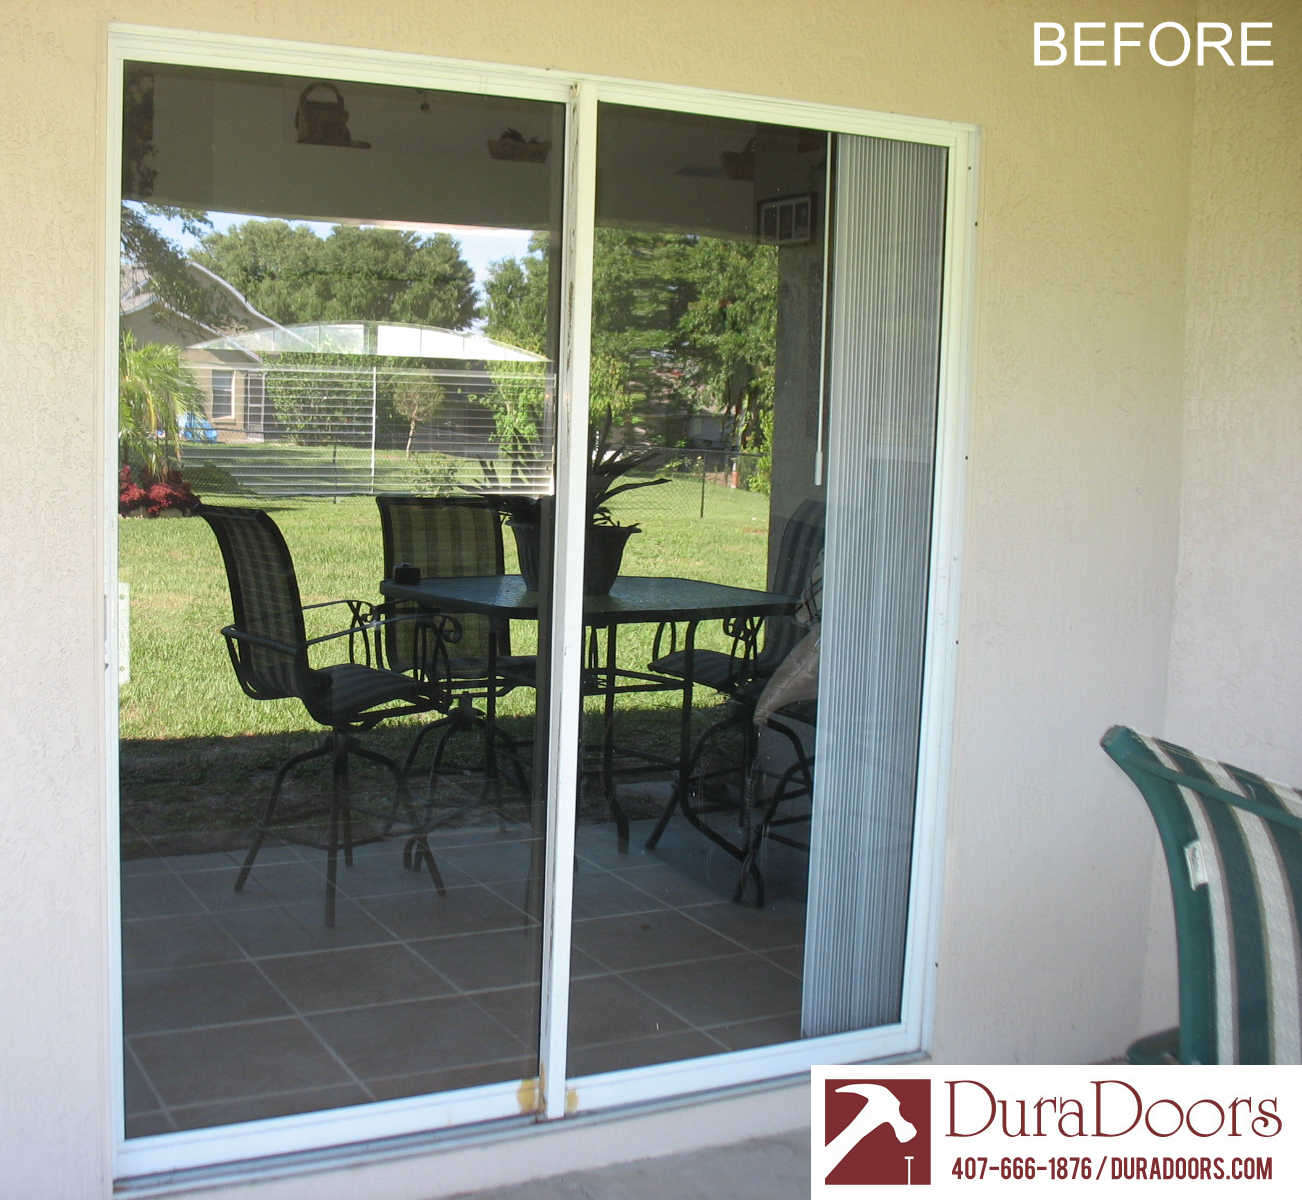 htm on doors for raised installation instructions door between blinds addon odl add glass sidelights frame